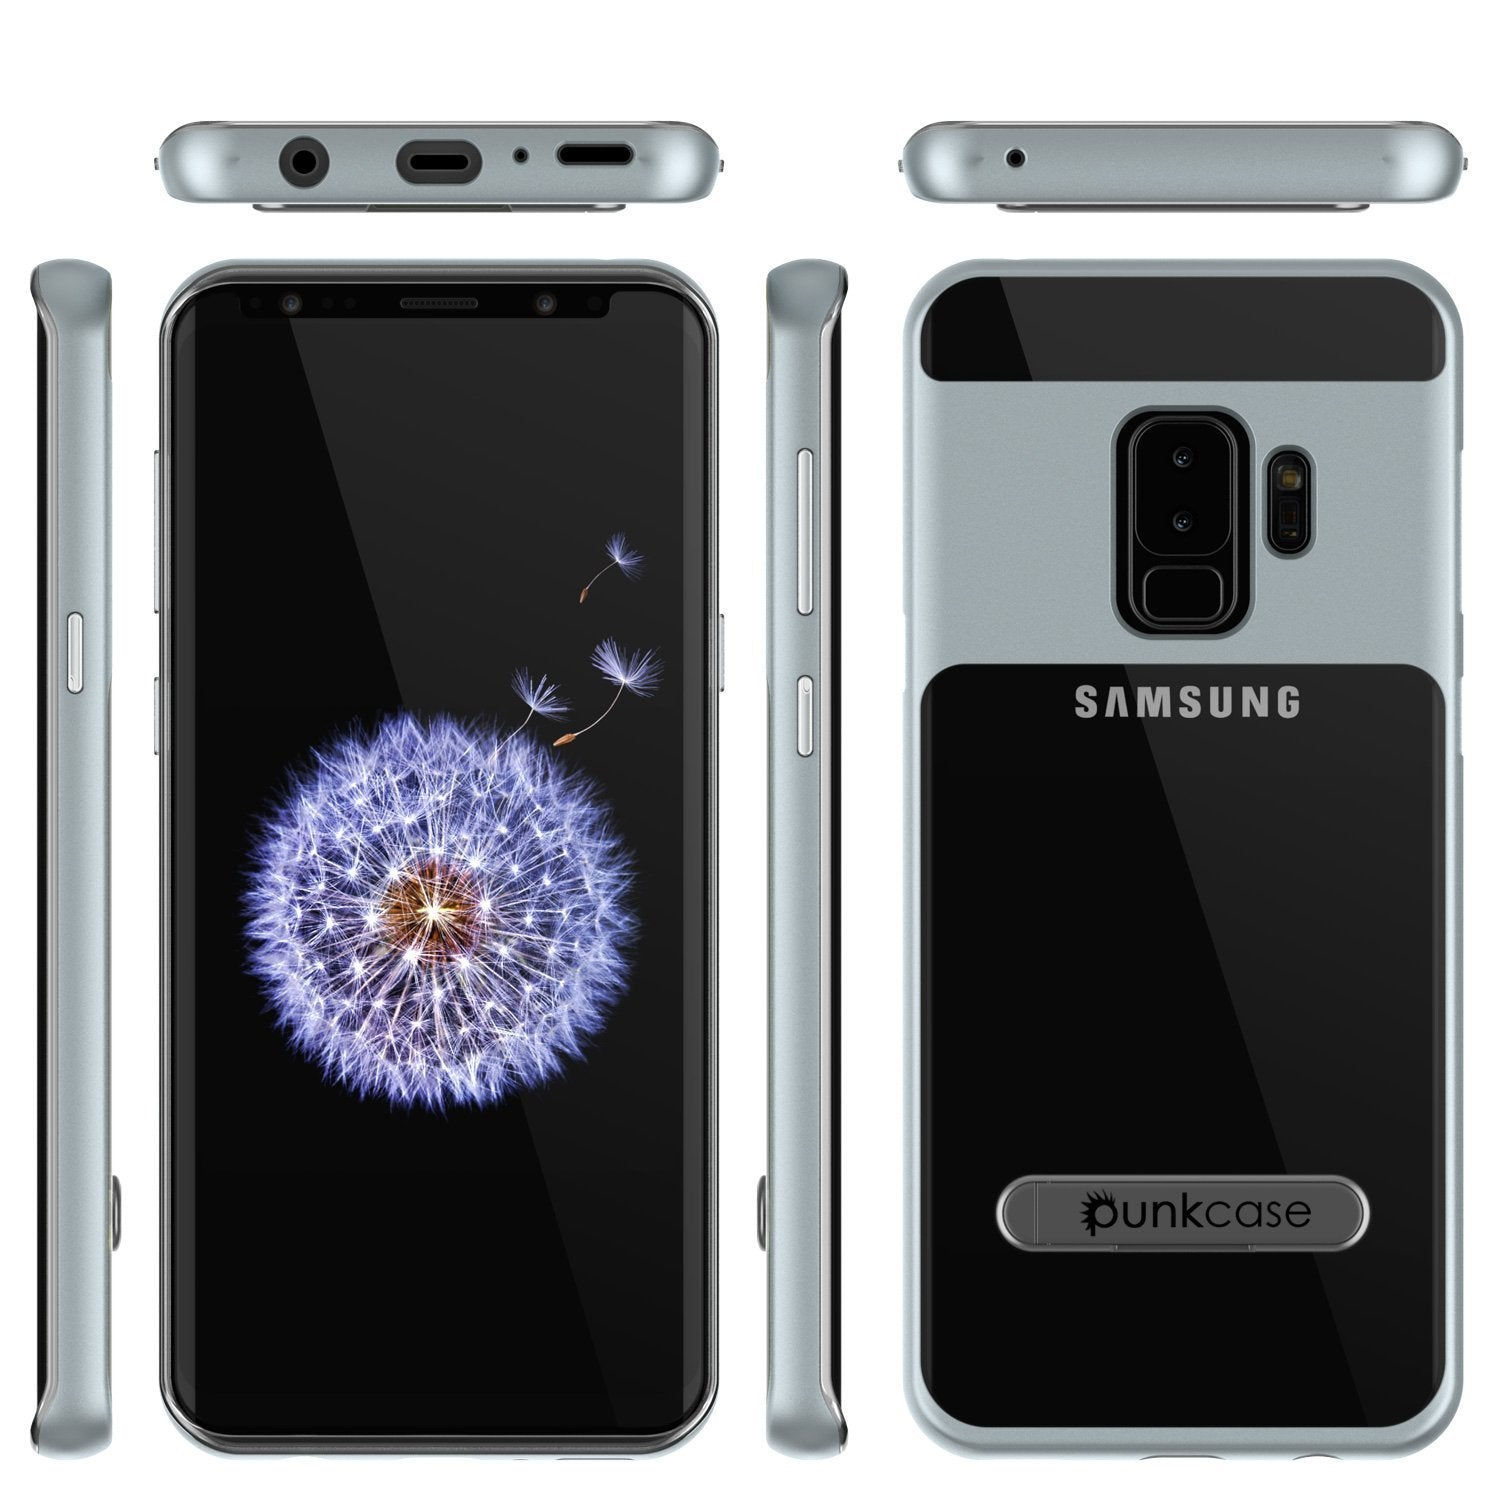 Galaxy S9+ Plus Case, PUNKcase [LUCID 3.0 Series] [Slim Fit] [Clear Back] Armor Cover w/ Integrated Kickstand, Anti-Shock System & PUNKSHIELD Screen Protector for Samsung Galaxy S9+ Plus [Silver]